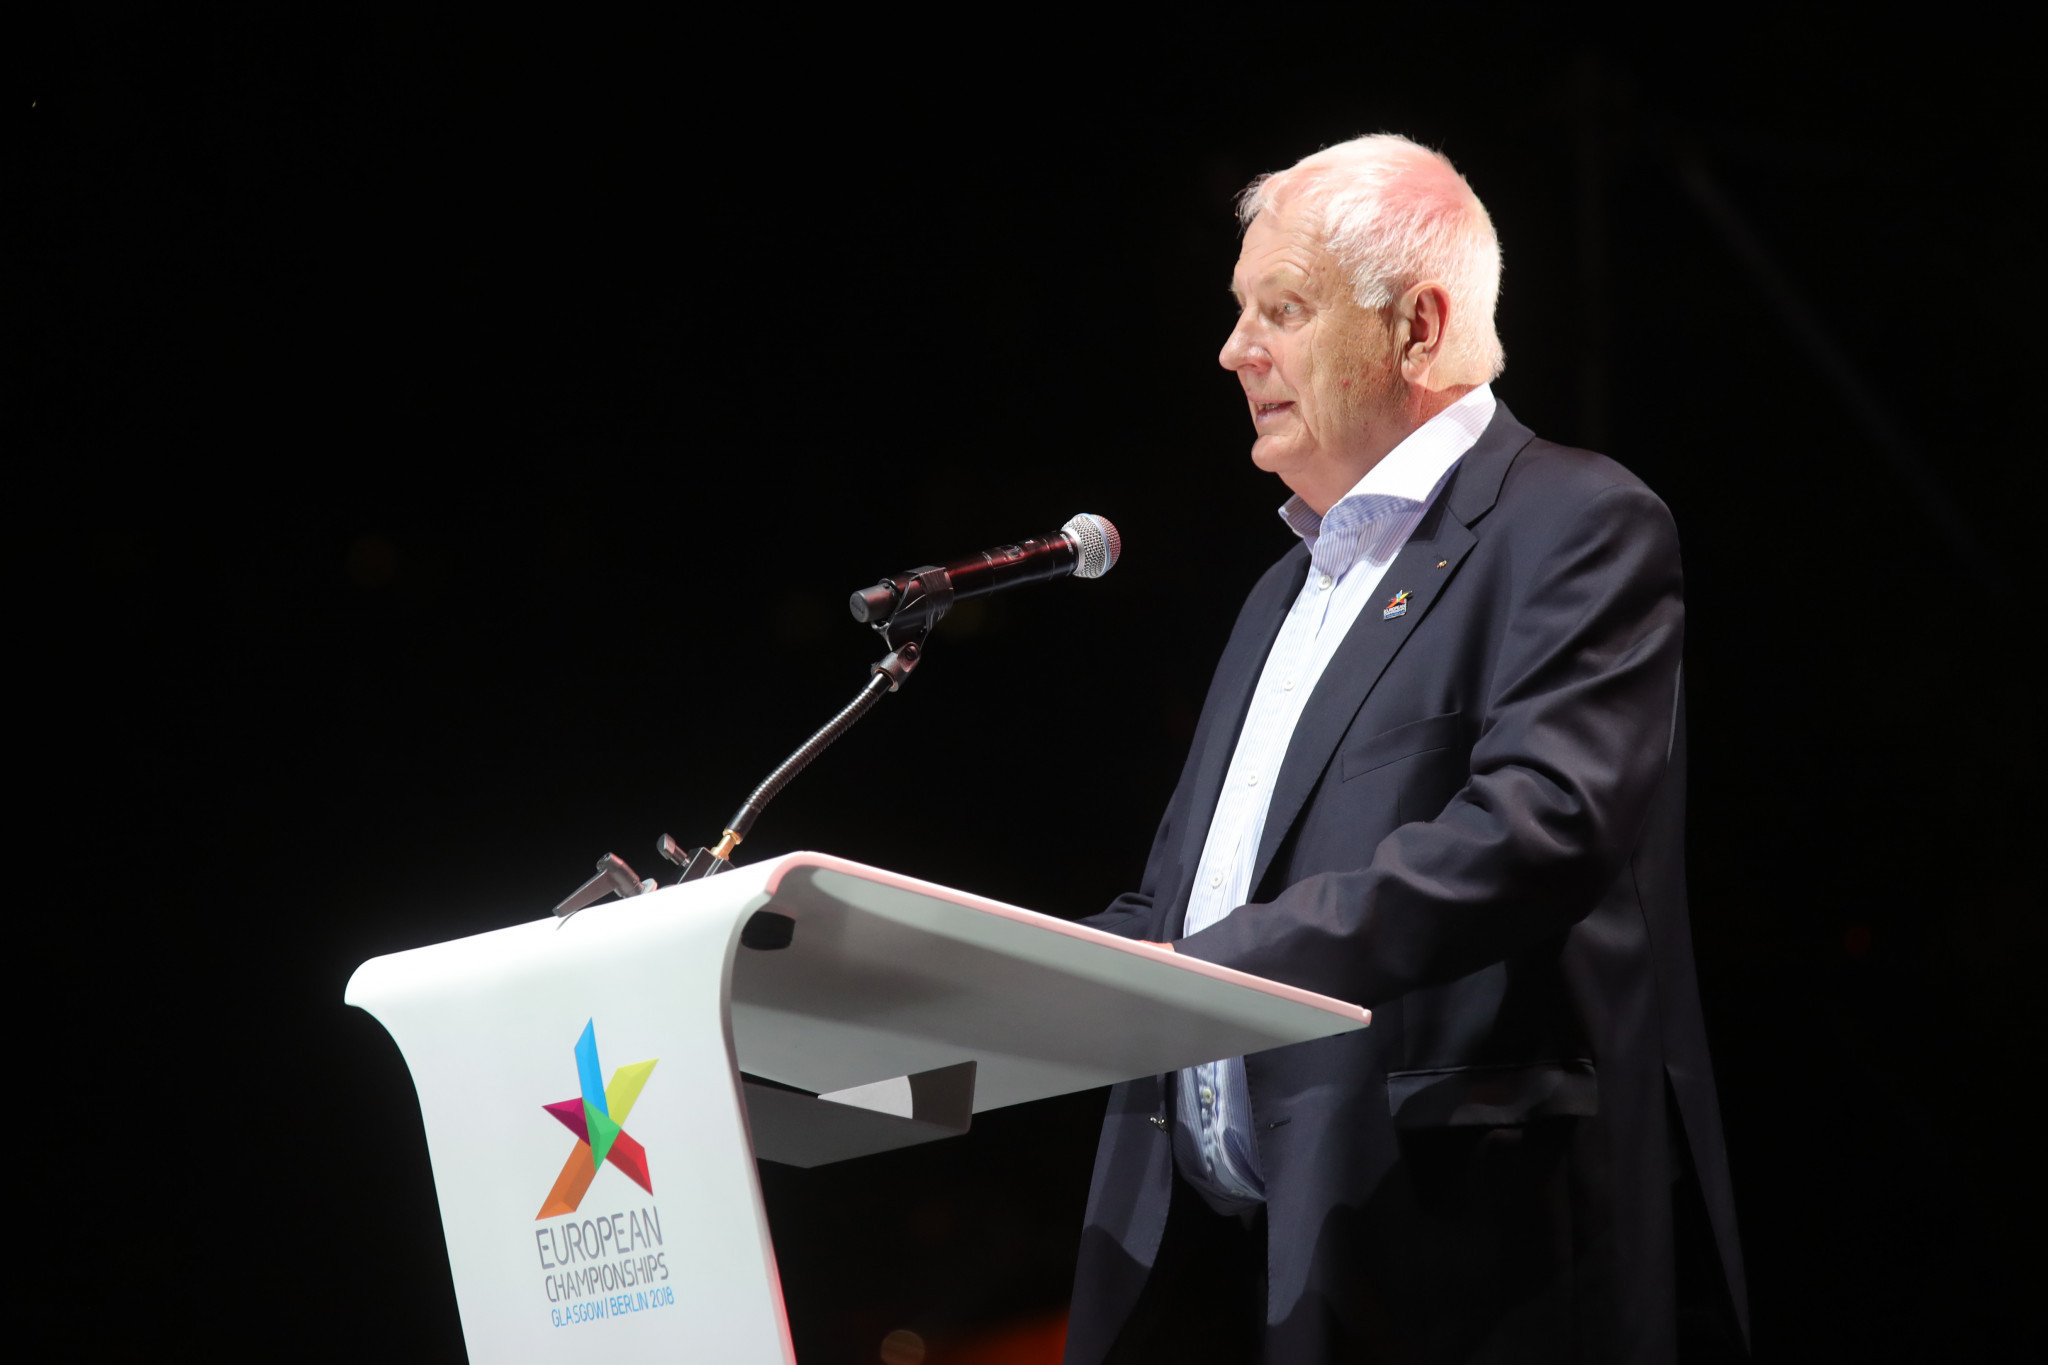 Hansen to stand unopposed for re-election as European Athletics President